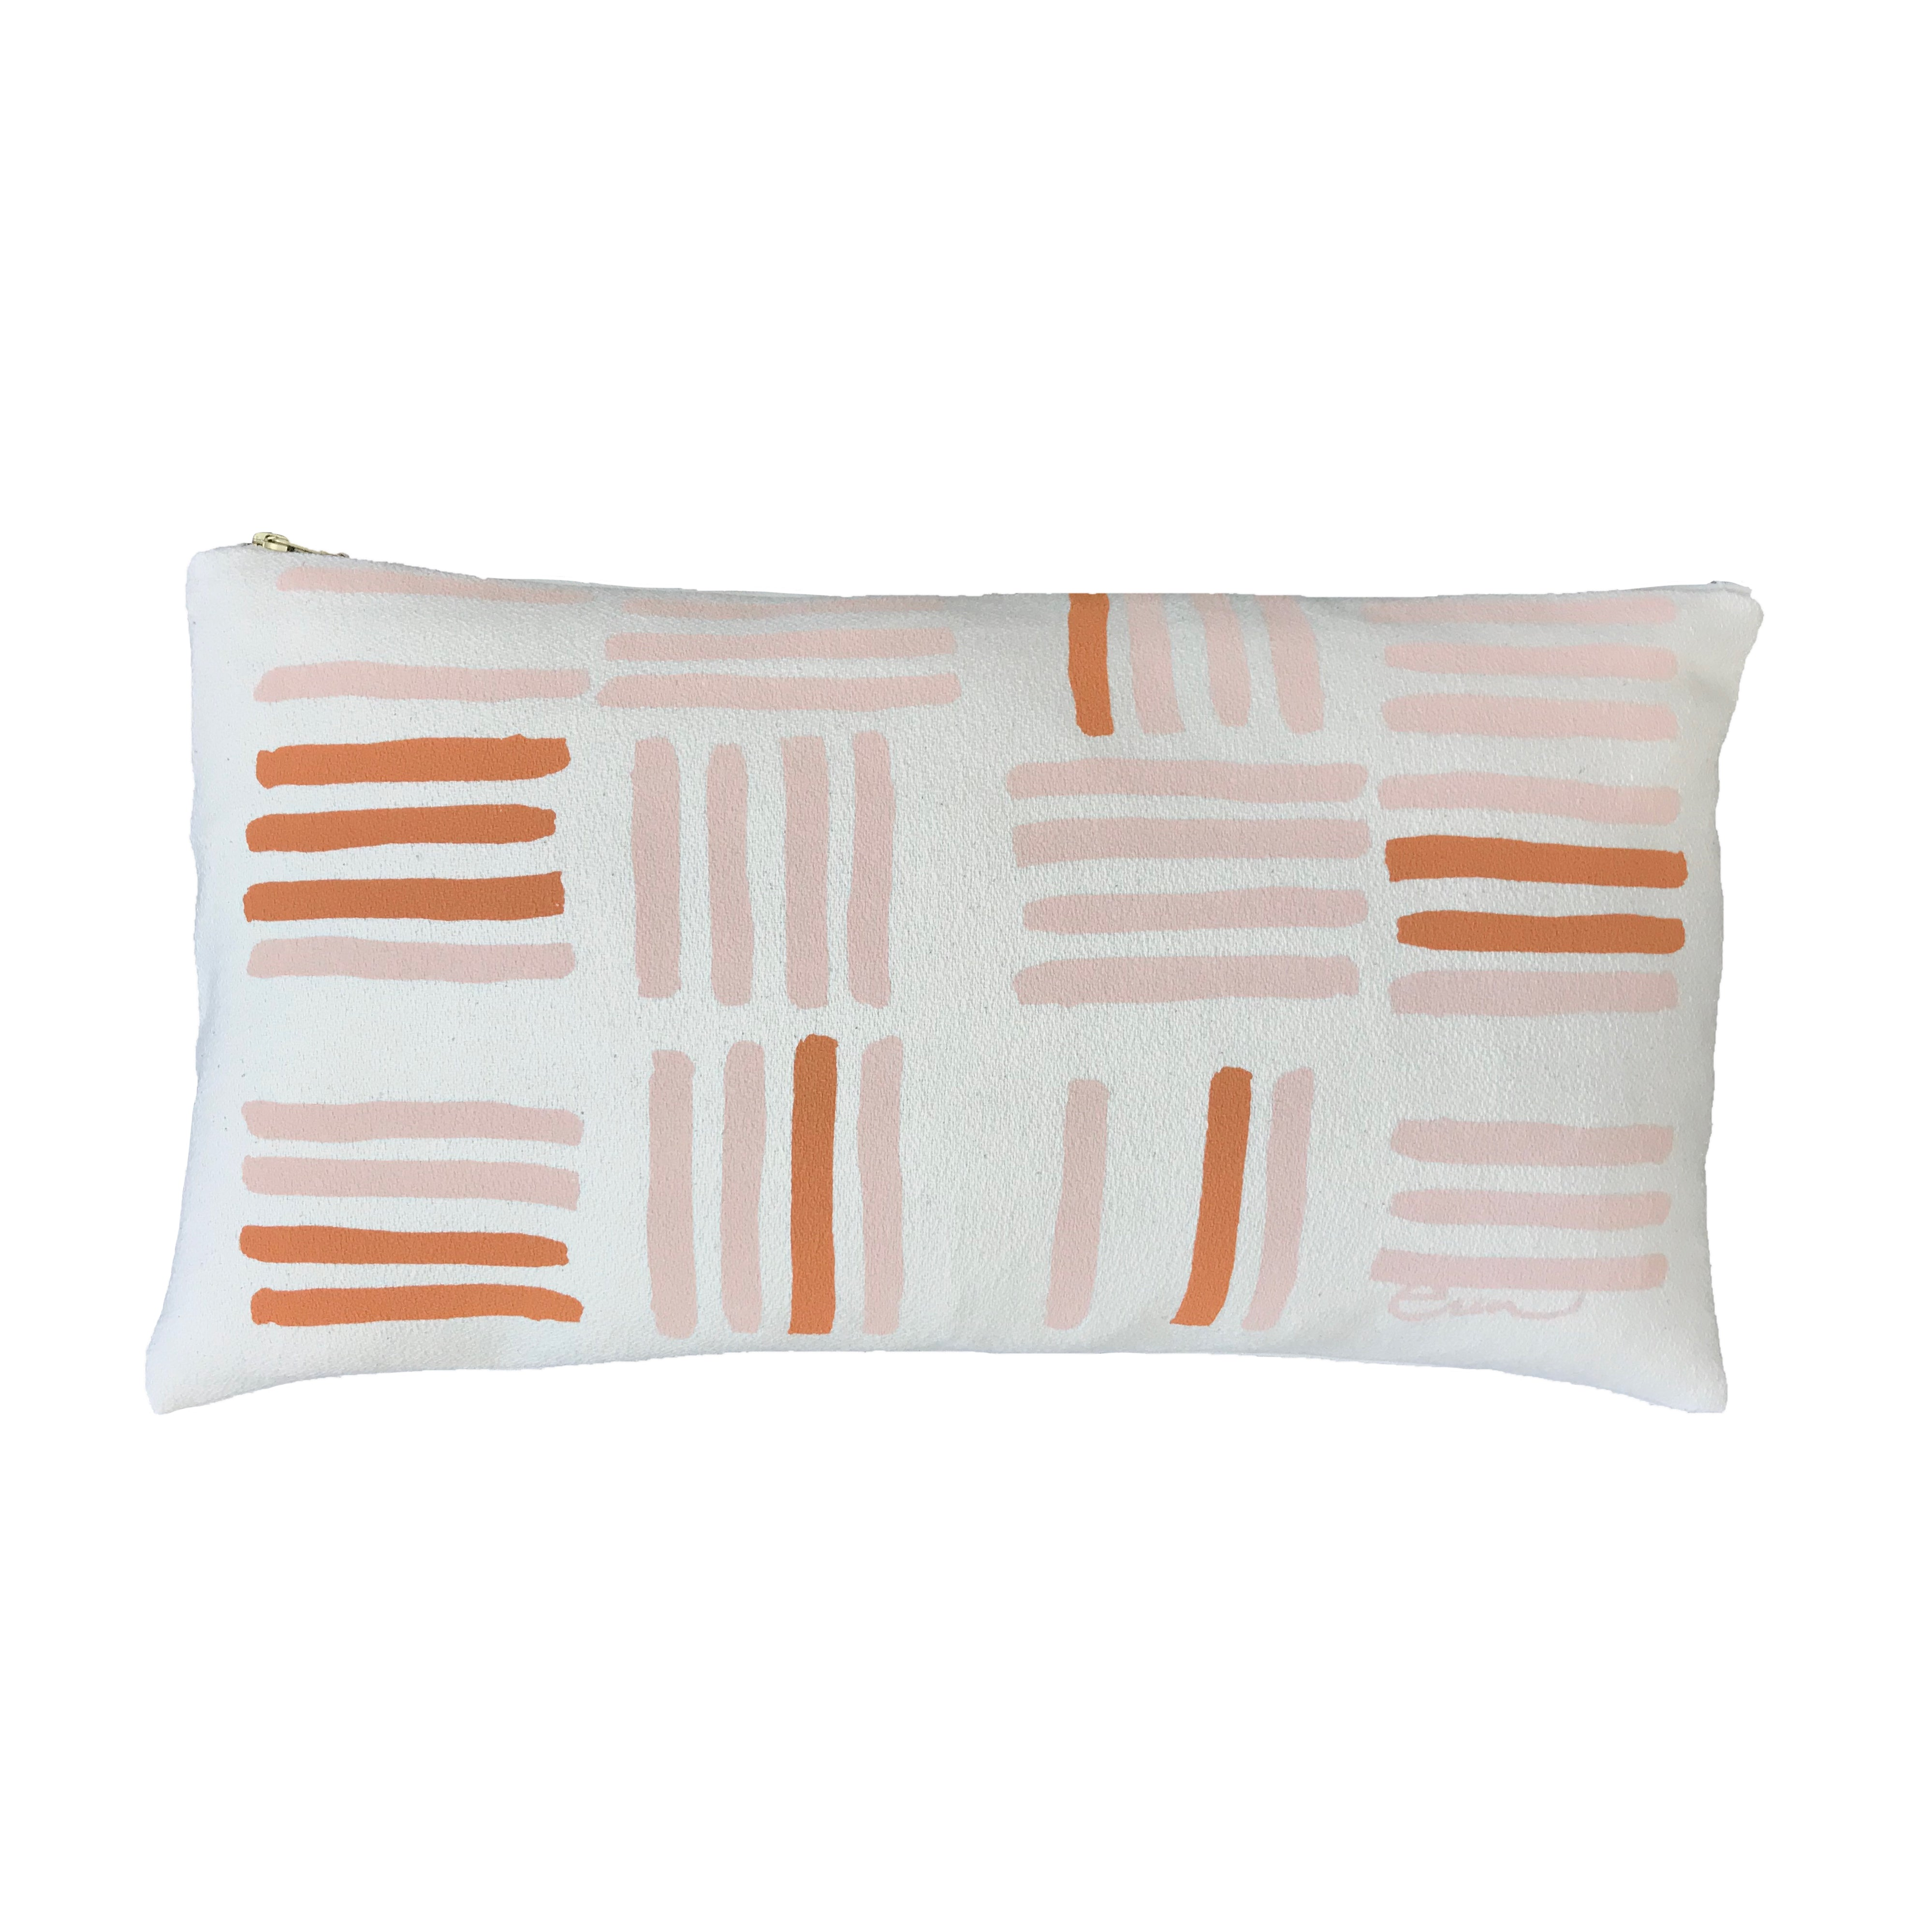 DUSTY PINK GRID PILLOW